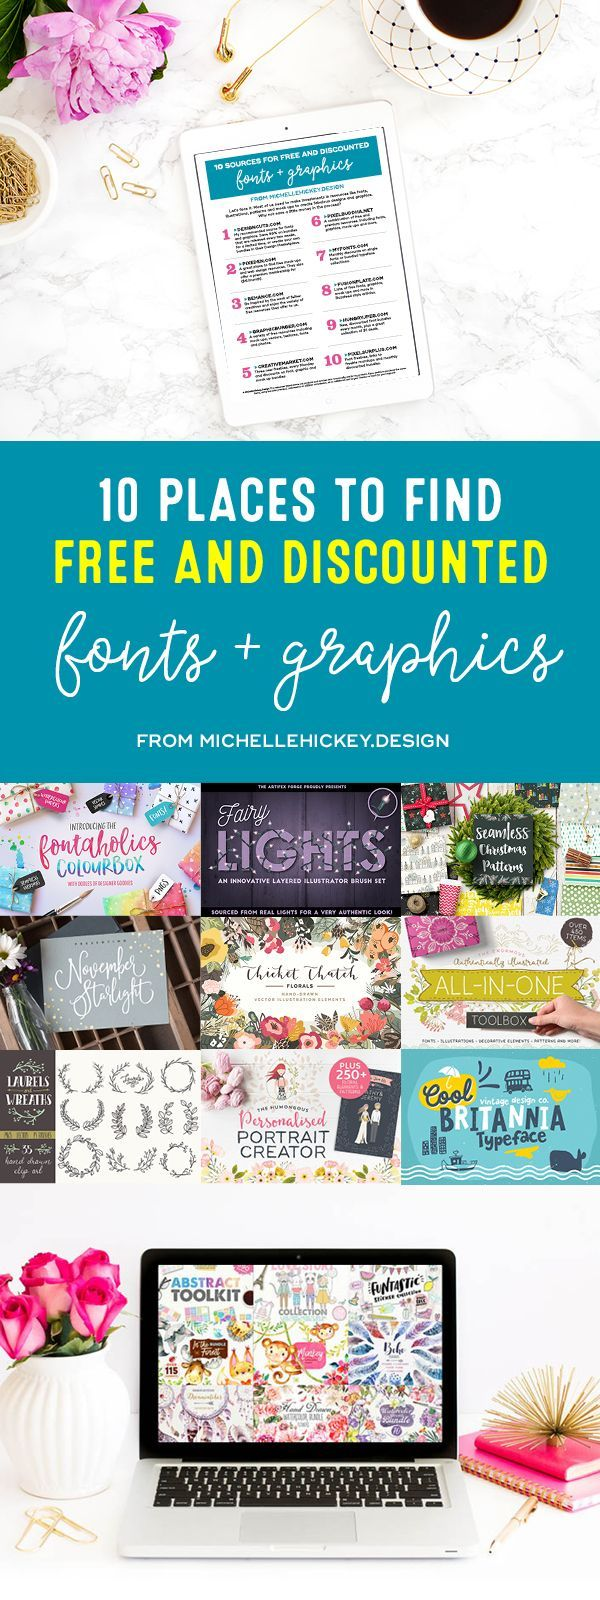 10 places to find free and discounted fonts + graphics! A comprehensive list of the best websites that help graphic designers, bloggers, and creative entrepreneurs save money. Sign up to download the free guide! // From MichelleHickey.Design